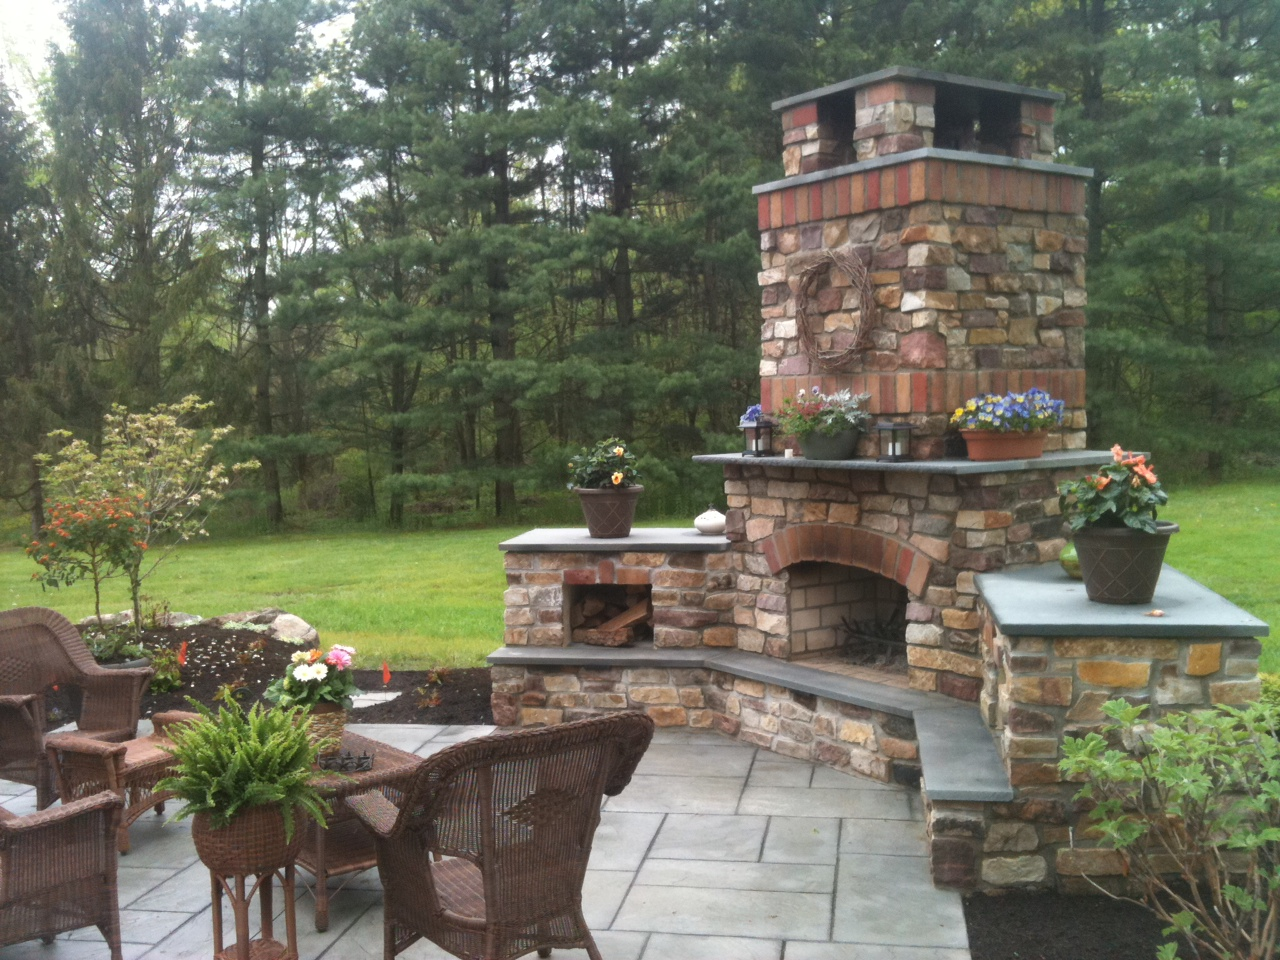 Top 21 Designs for the Outdoor Fireplace - Qnud on Brick Outdoor Fireplace Ideas id=34594